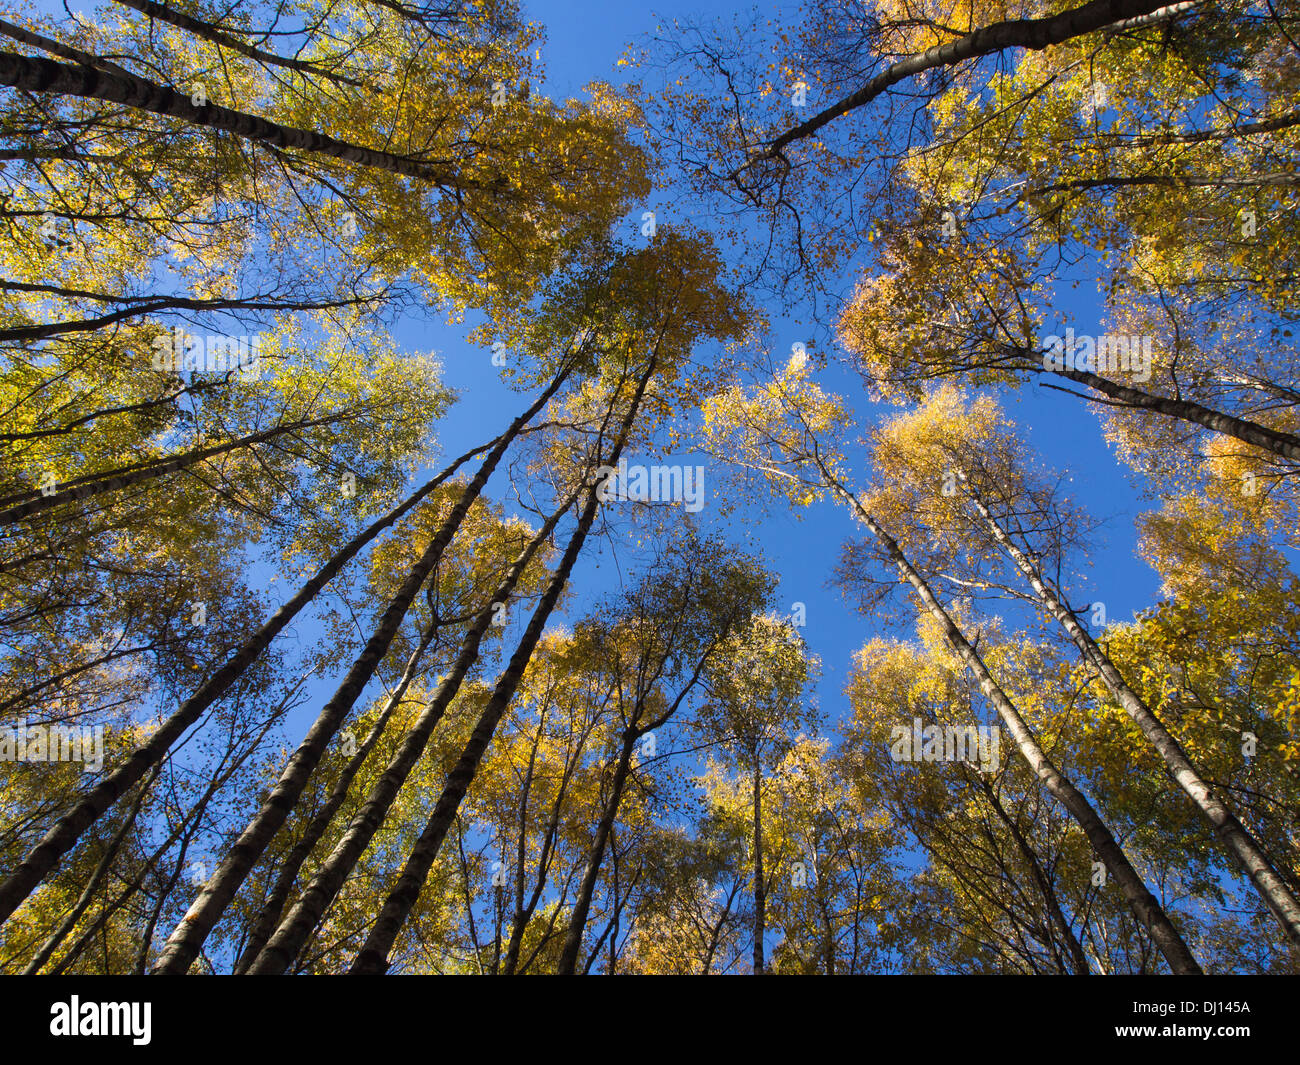 Autumn in a birch forest looking up on treetops with yellow leaves, and a blue sky, Oslo Norway - Stock Image